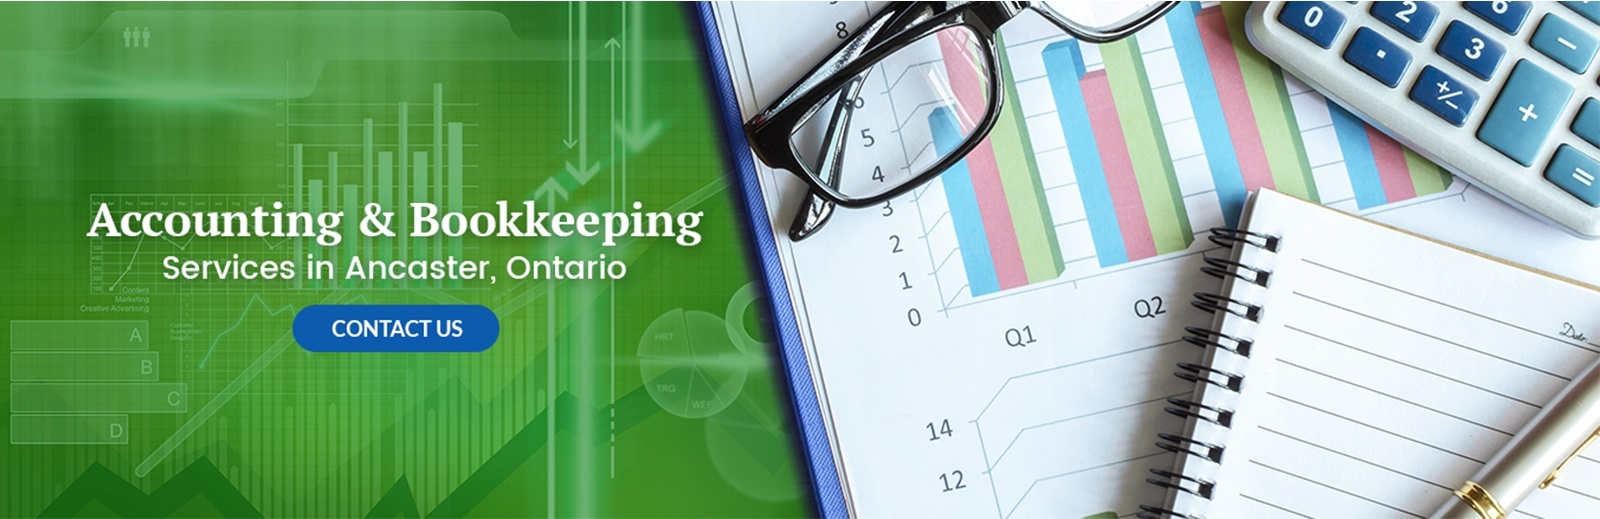 Accounting Services Ancaster